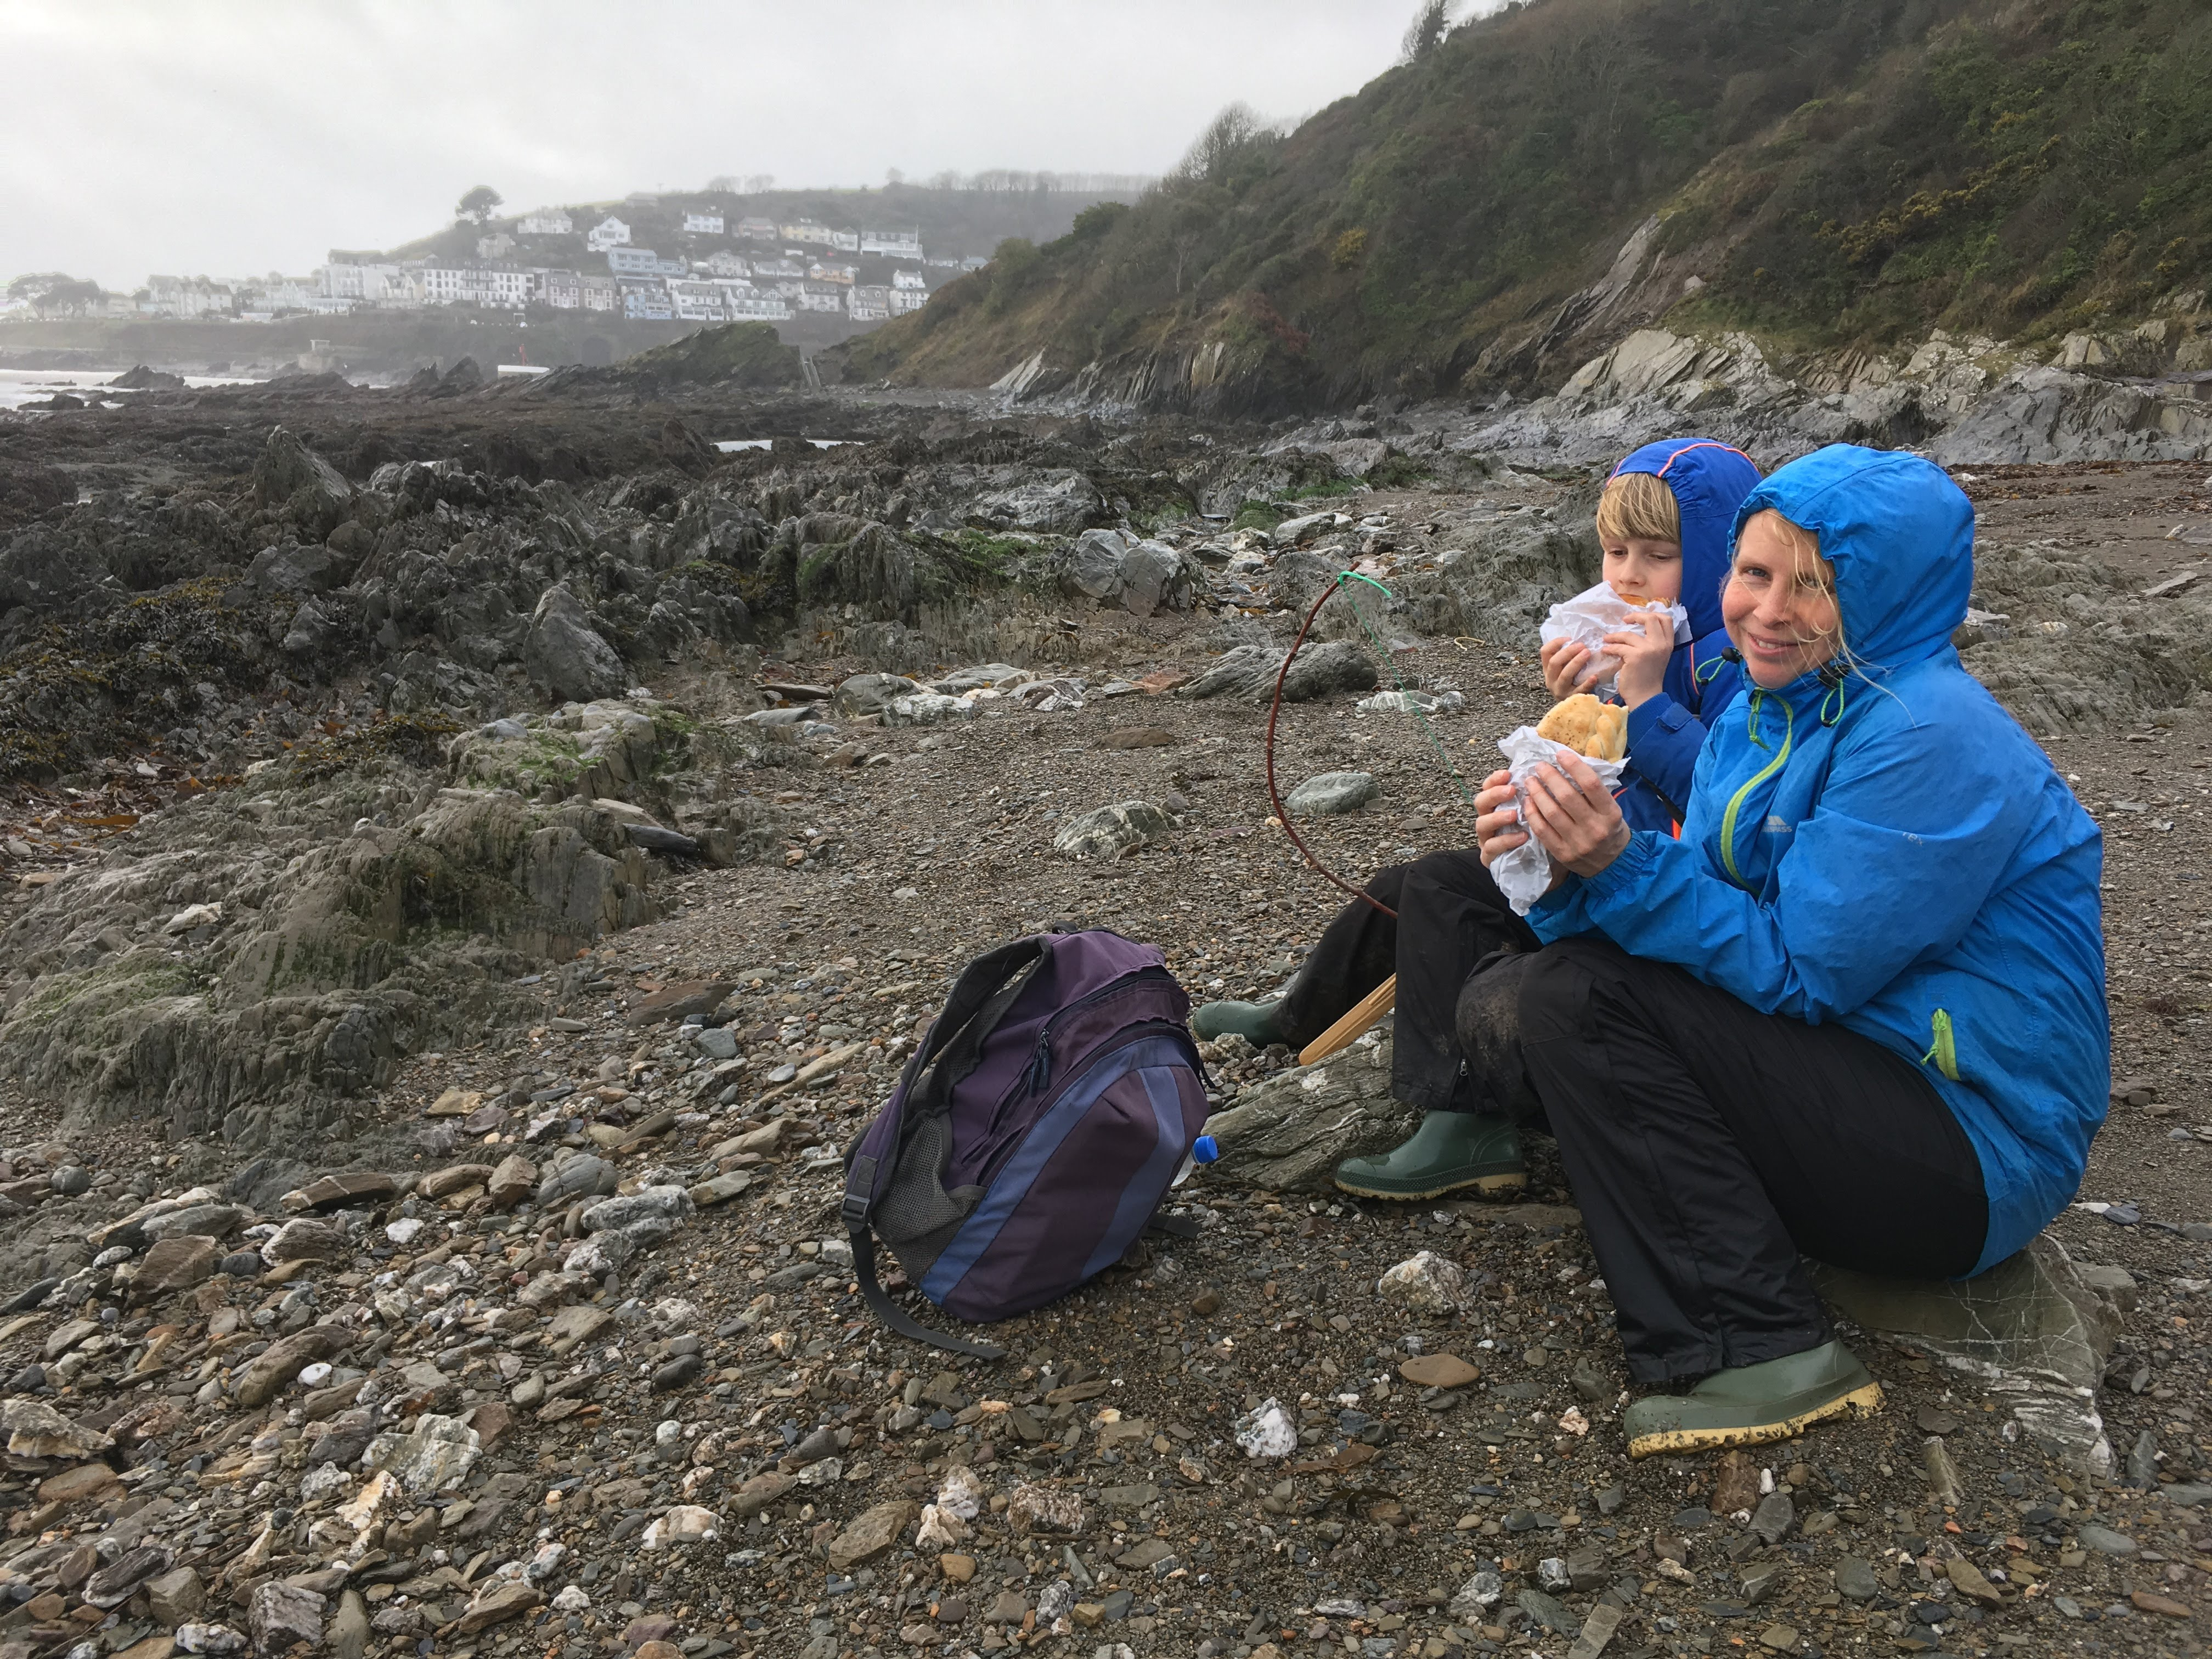 Cornish Rock Pools in Looe - fuelled by rain-soaked pasties